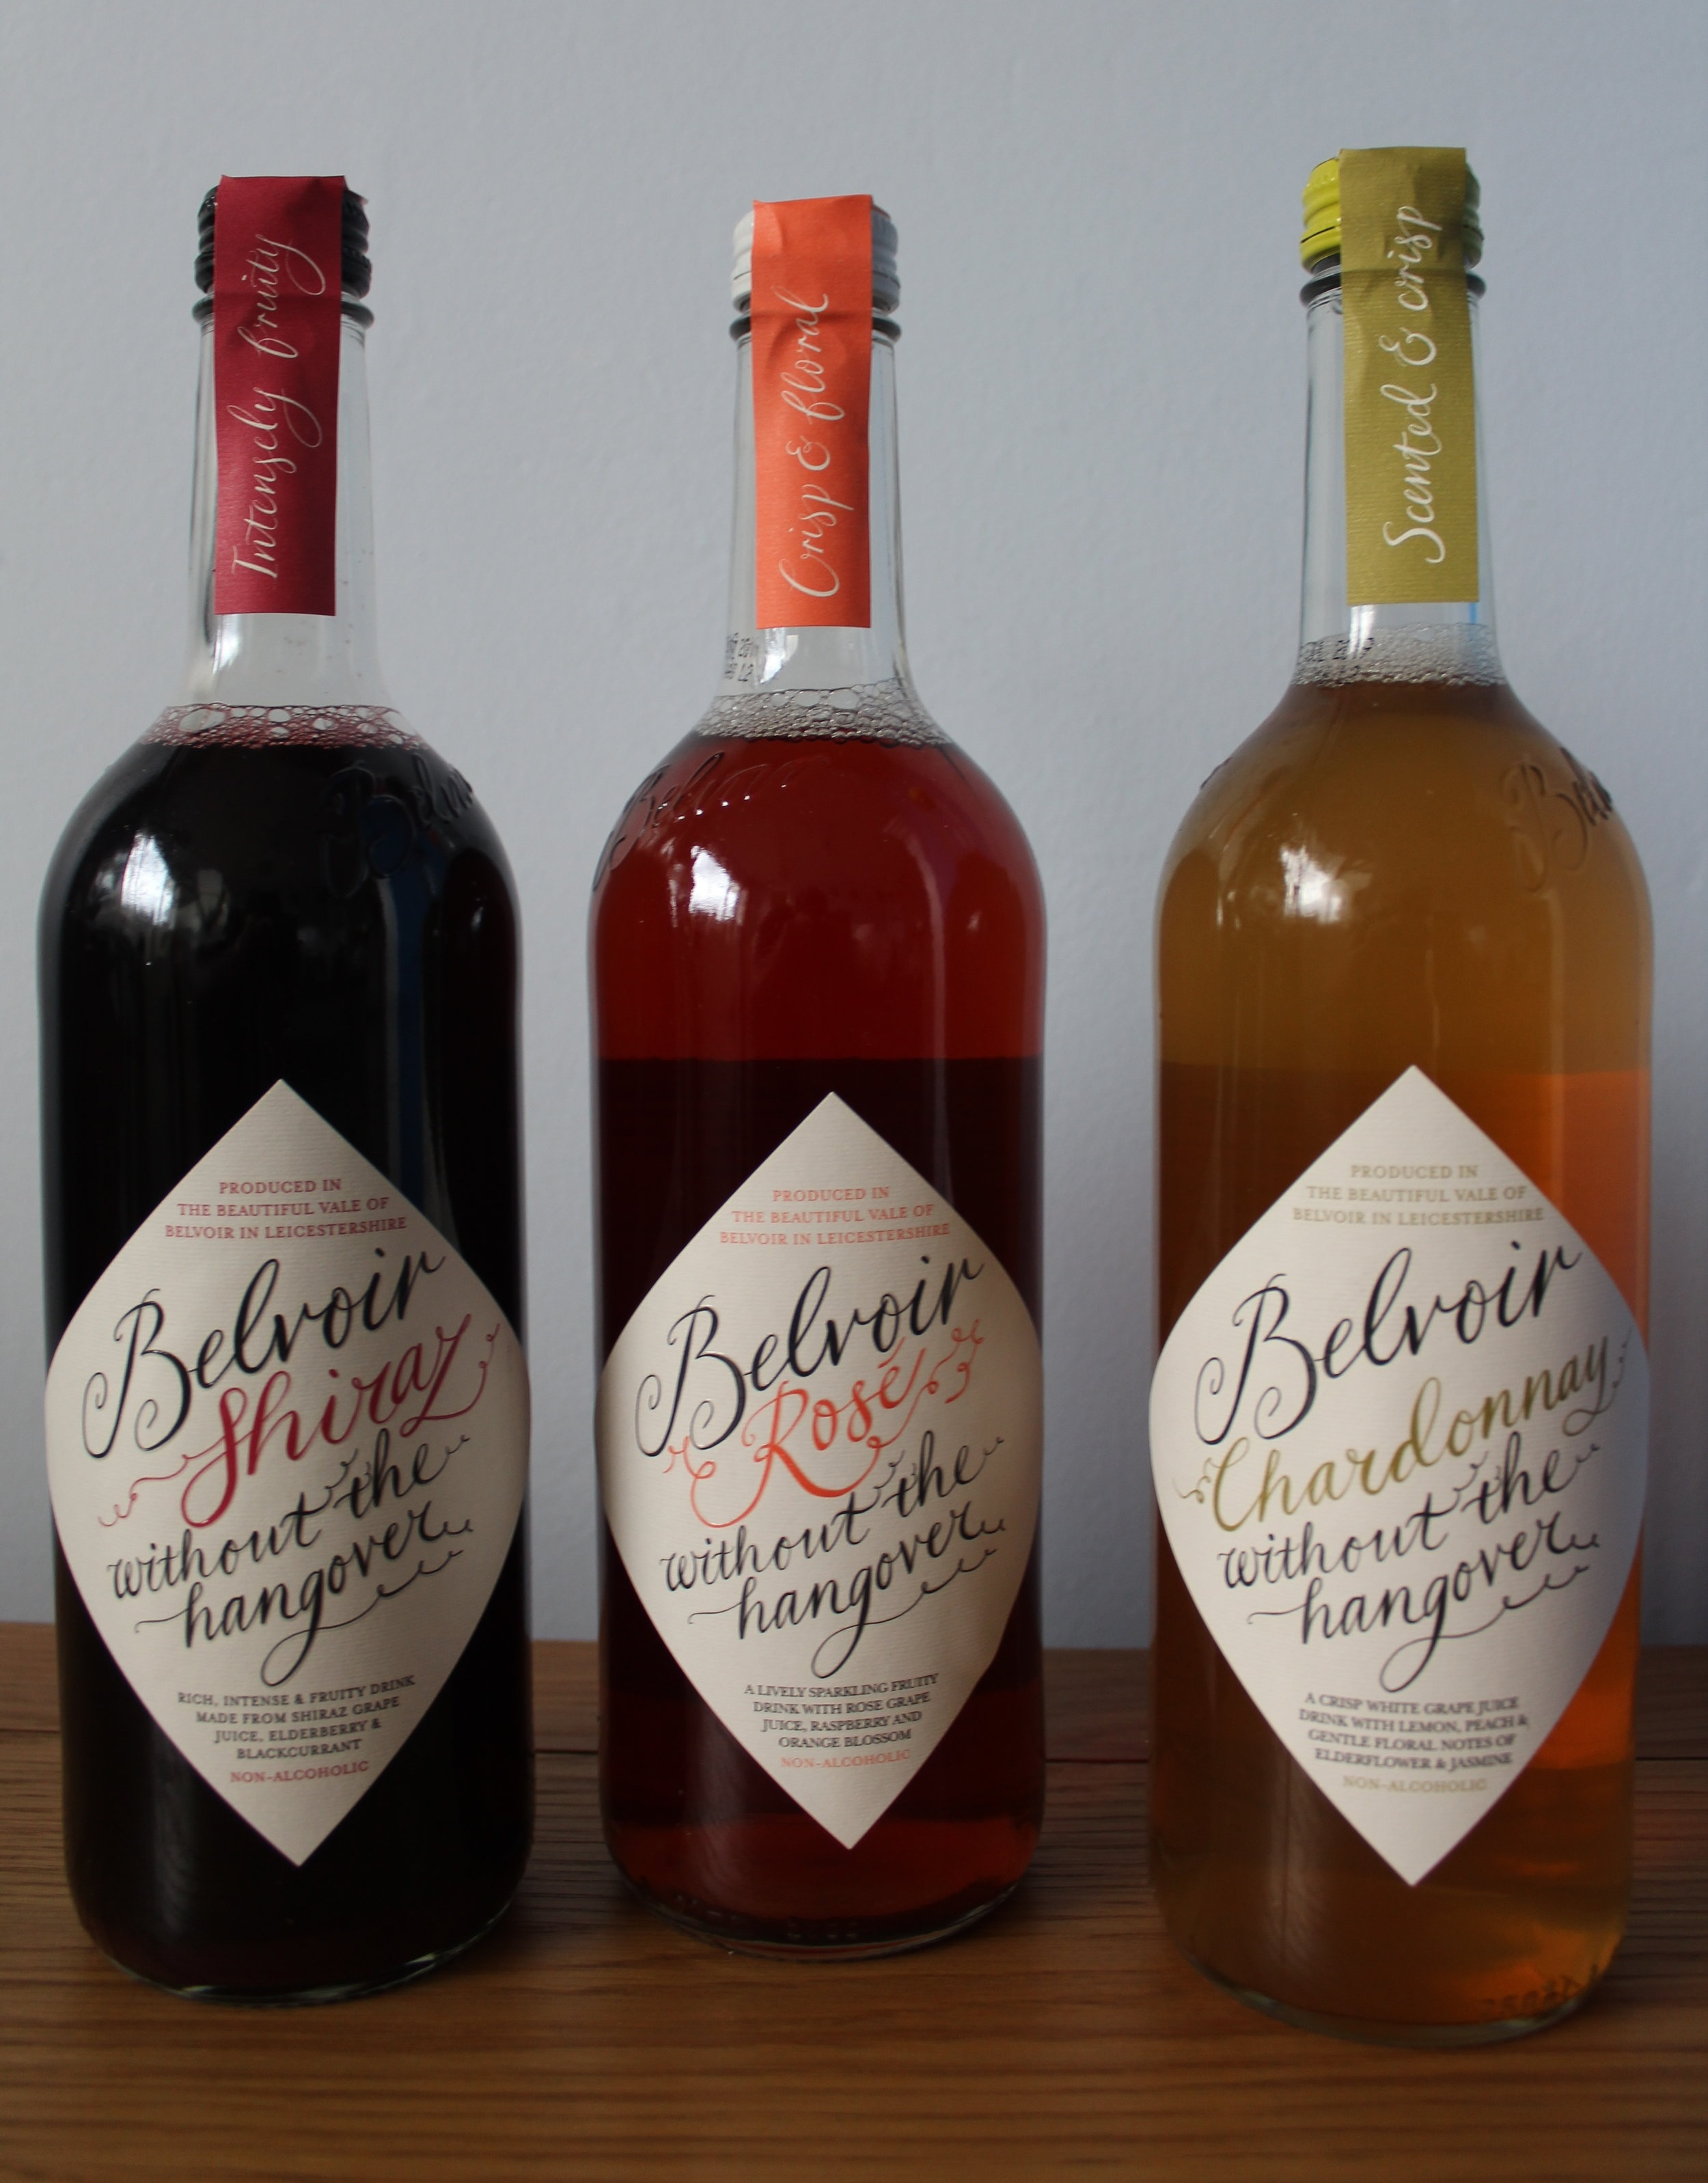 Belvoir without the hangover Rose Shiraz Chardonnay non alcoholic wine